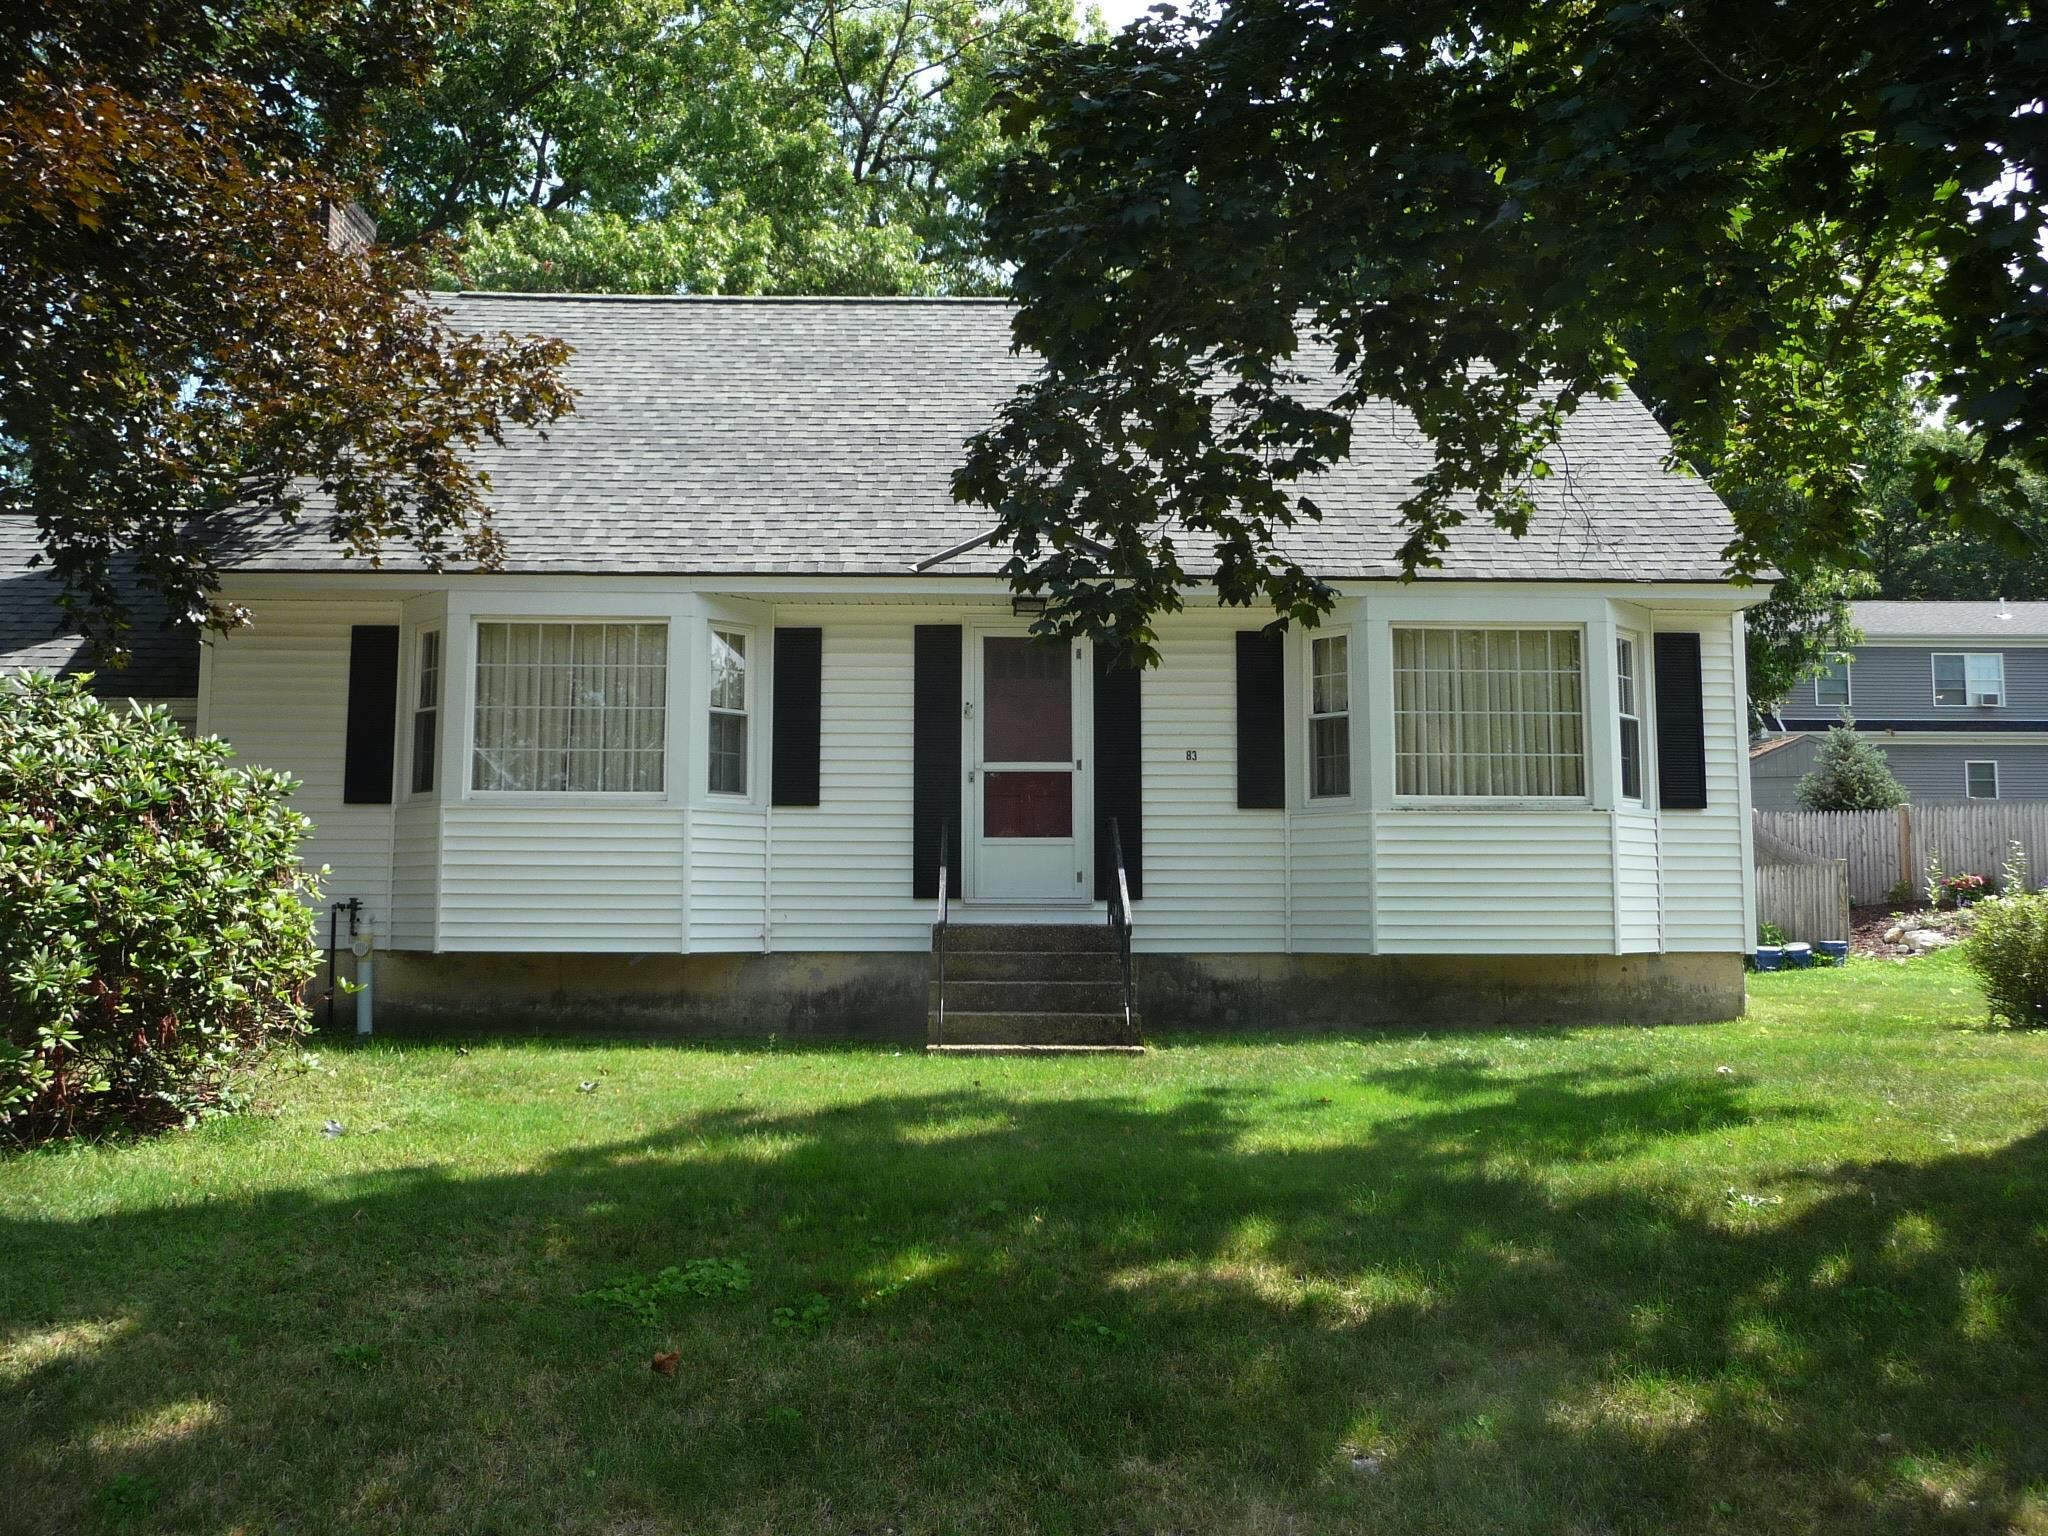 Photo of 83 Mayflower Drive Manchester NH 03104